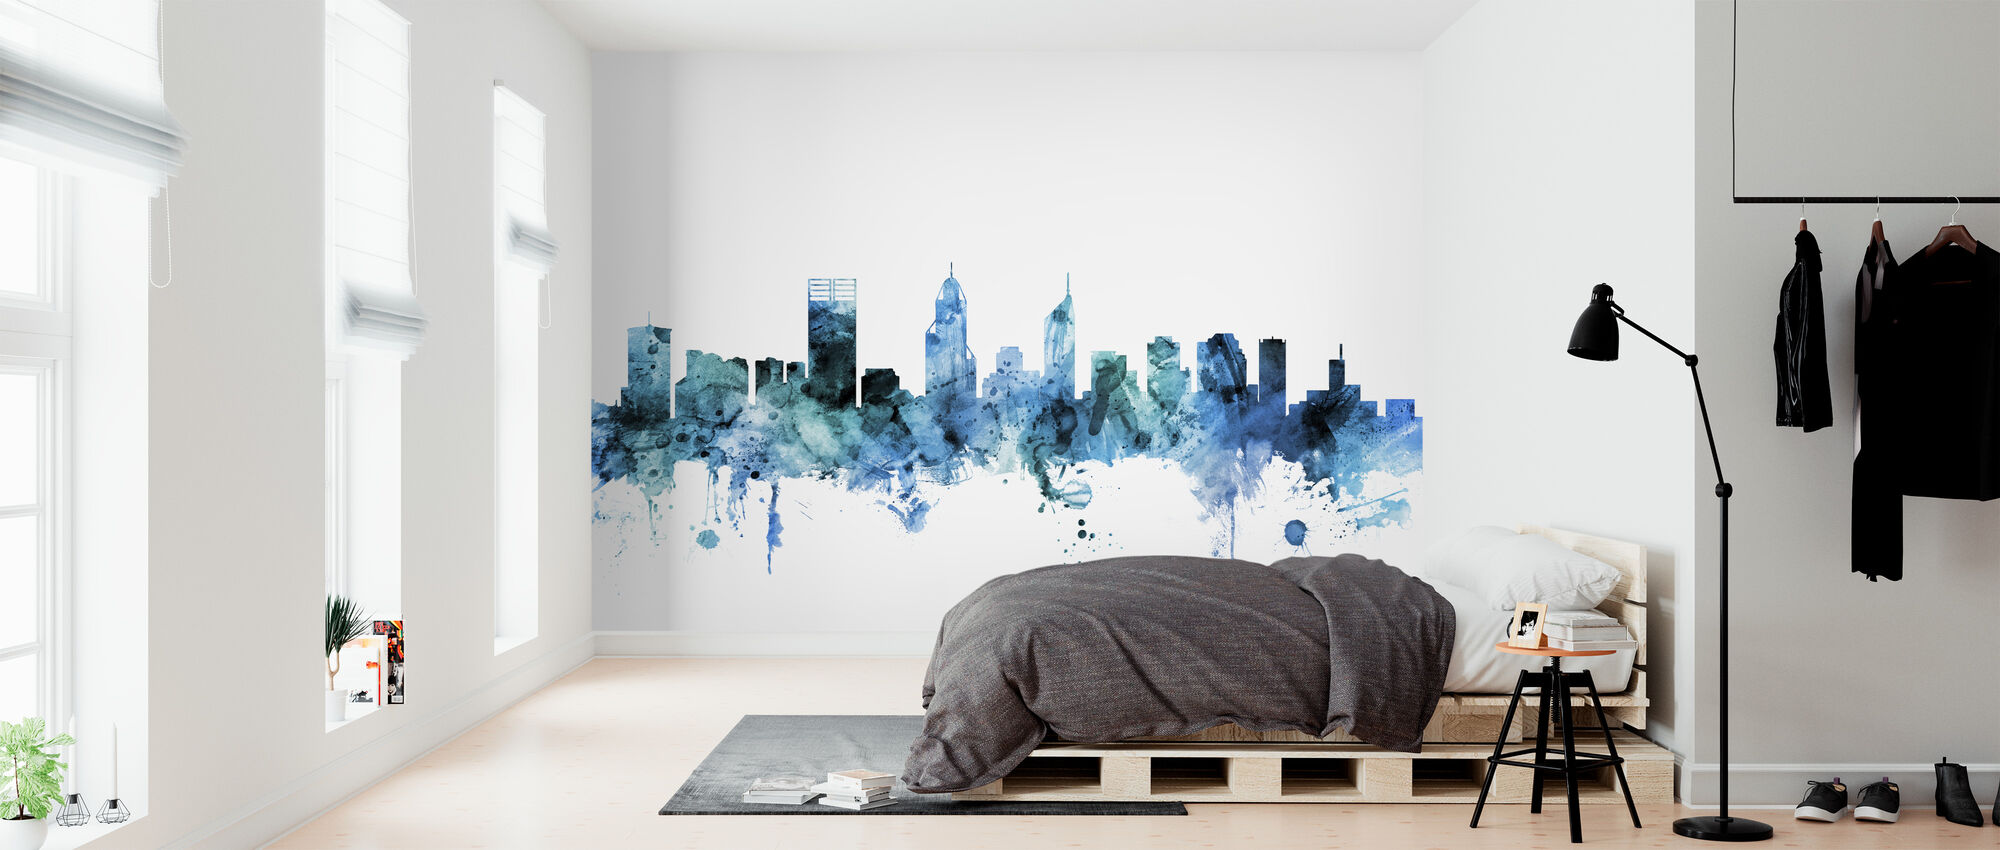 Perth Australia Skyline - Wallpaper - Bedroom